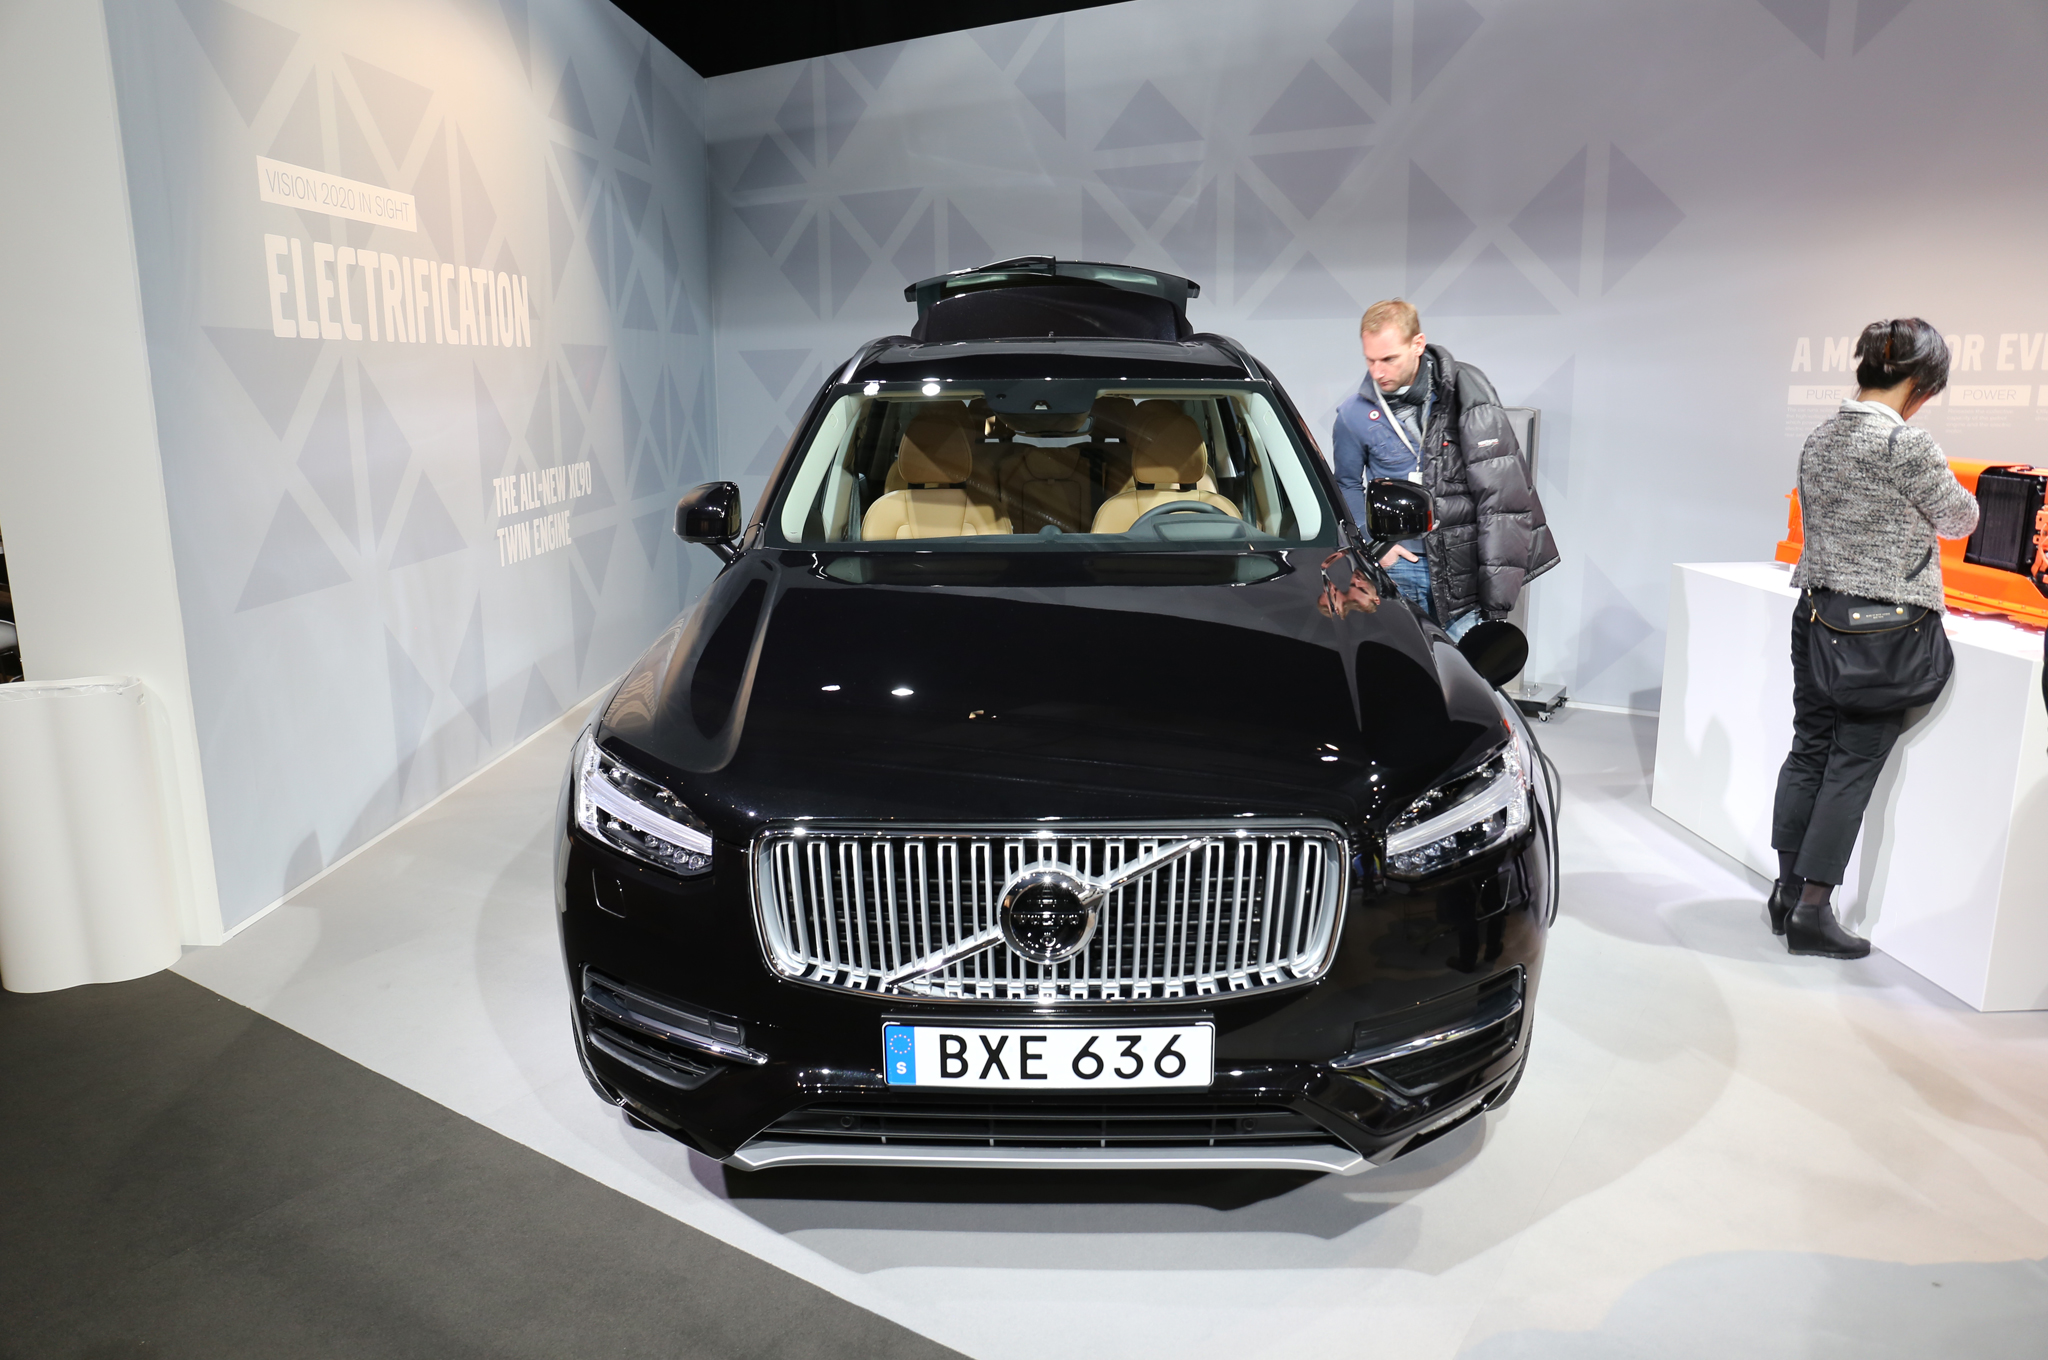 2016 Volvo XC90 T8 Black Exterior Preview